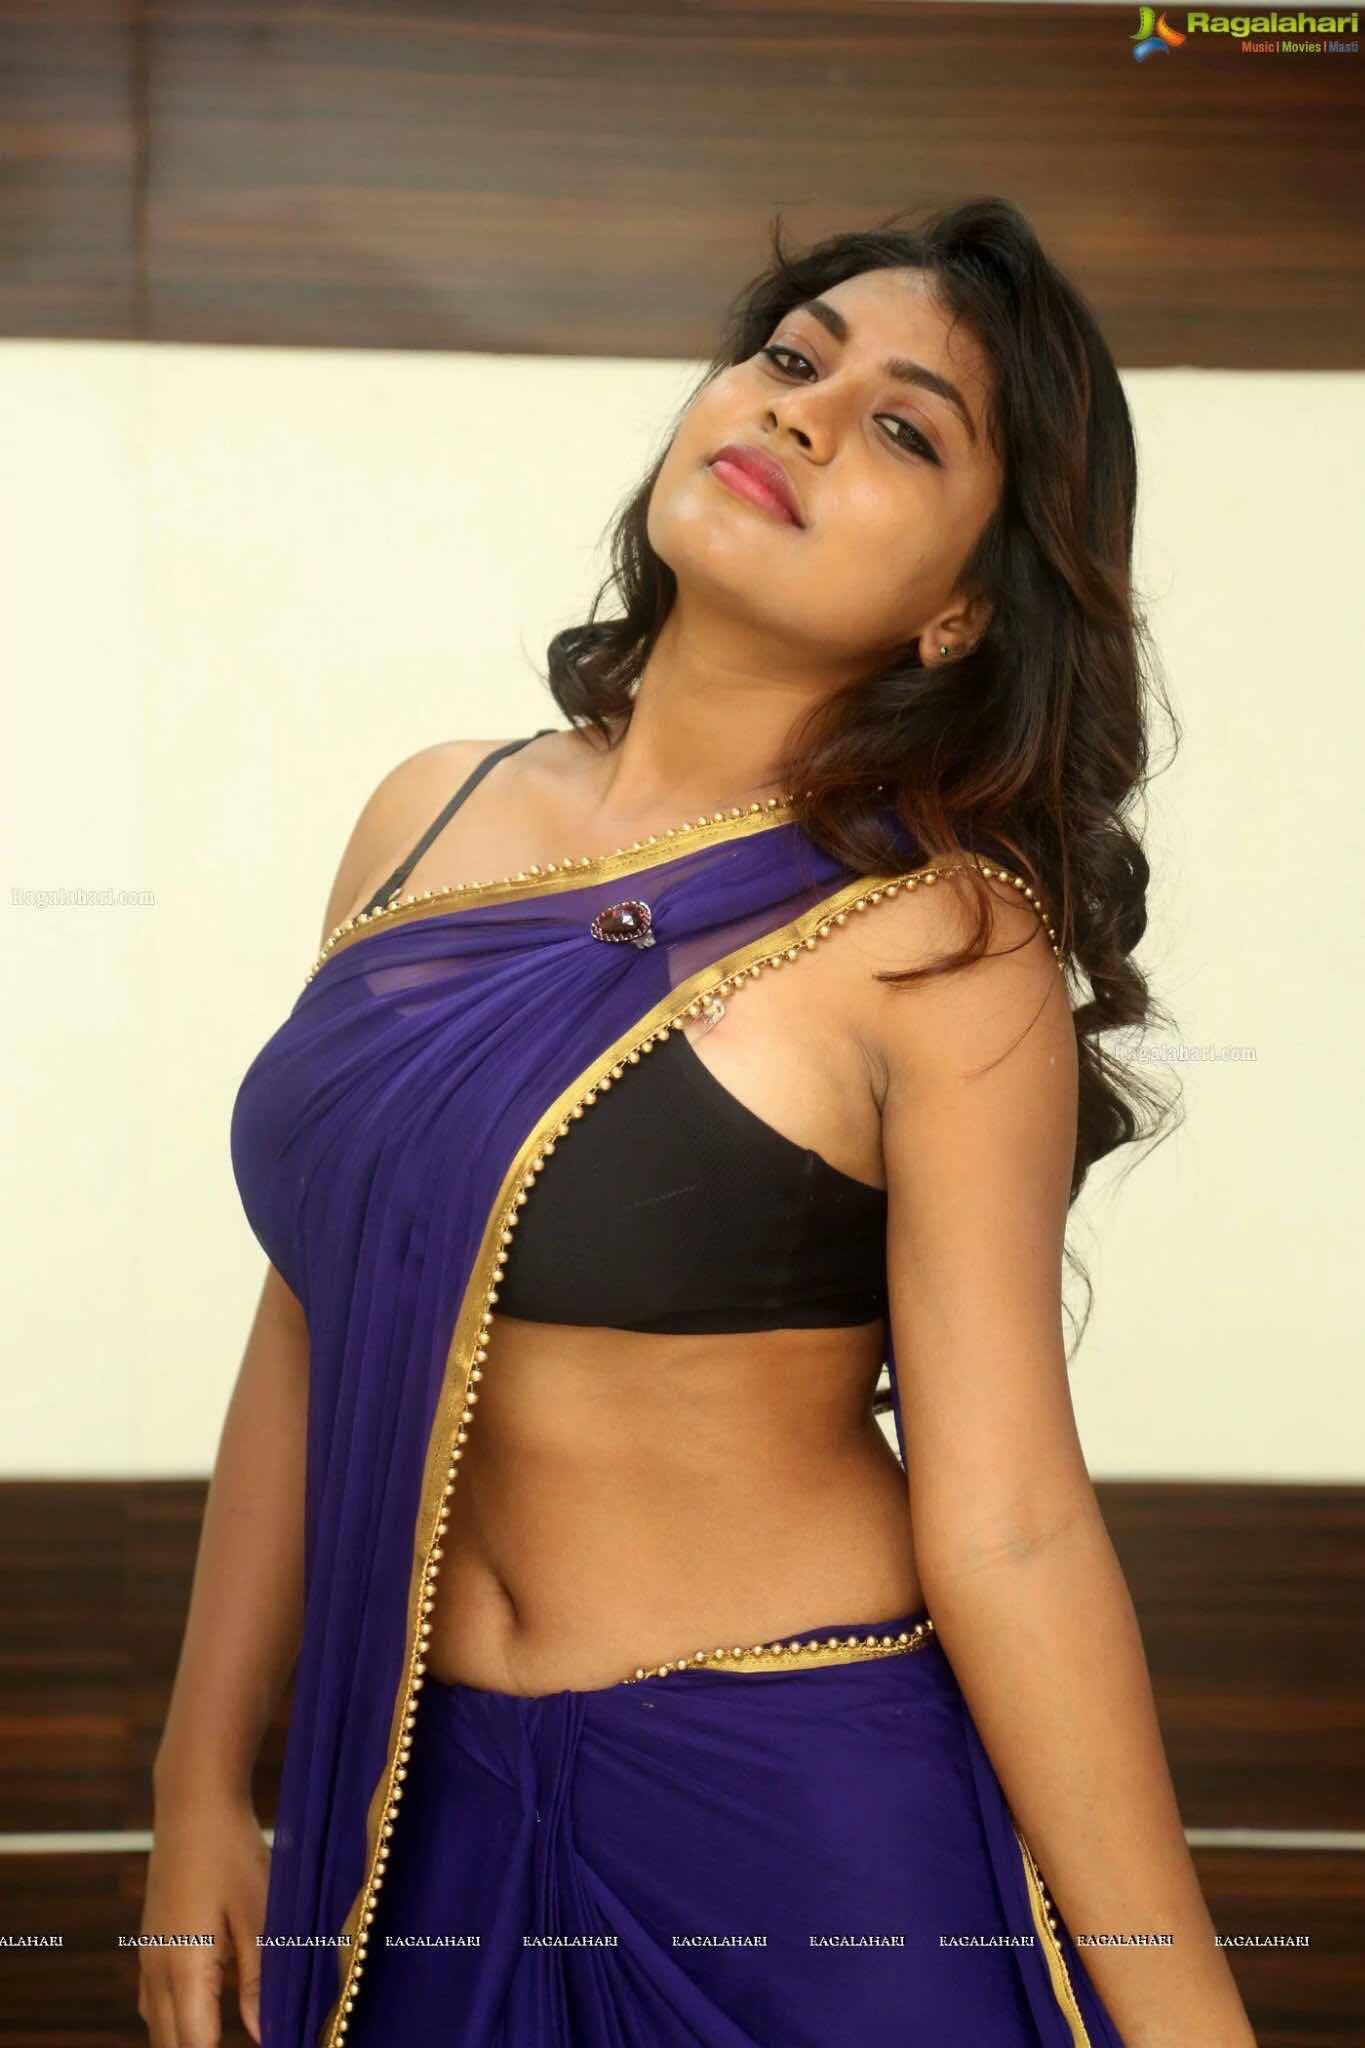 Zeigt tamil titten actress hot